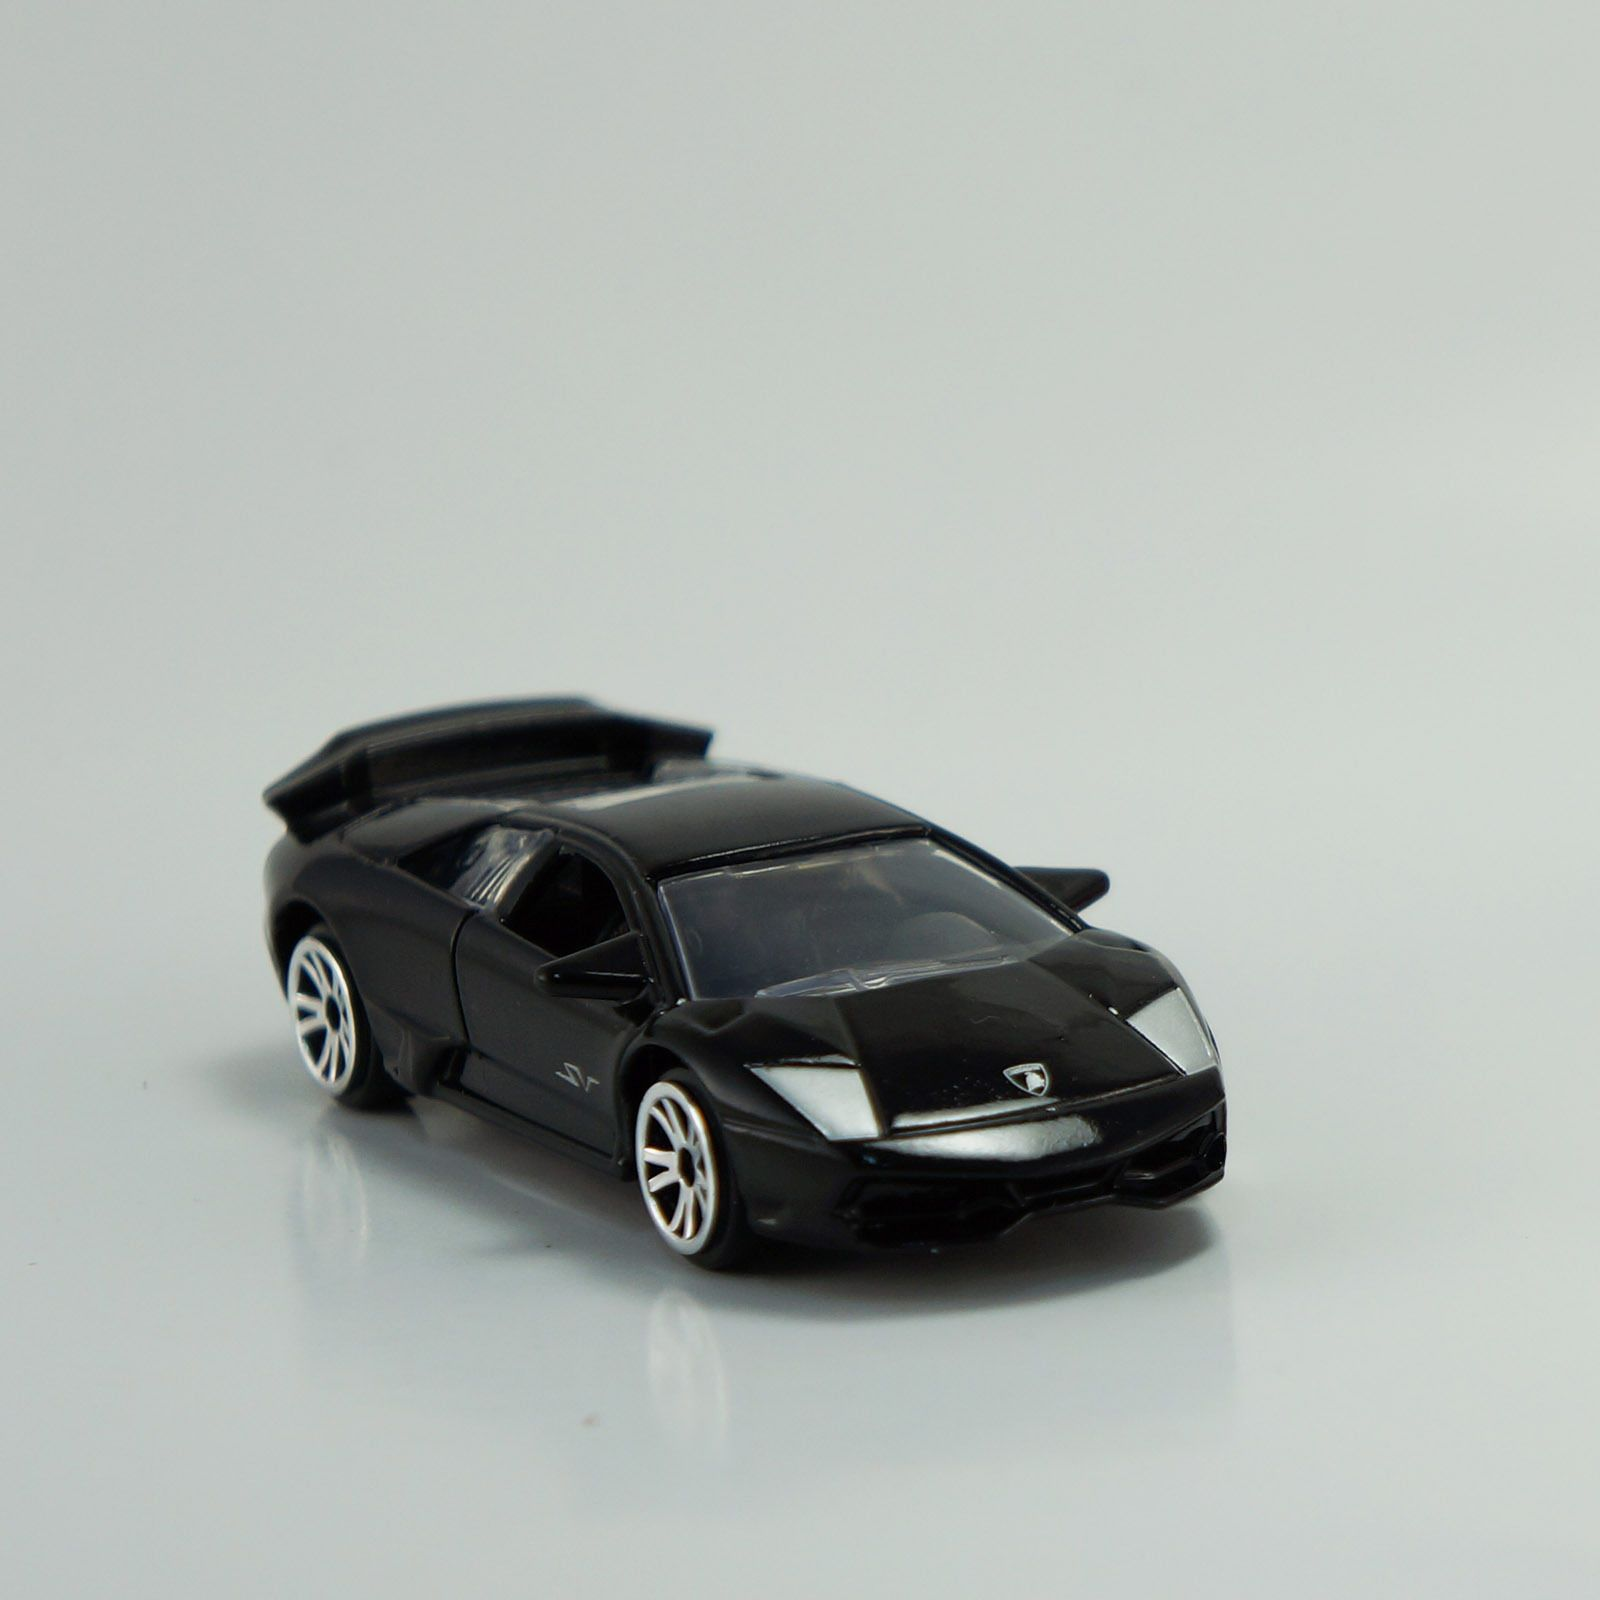 Nice Awesome Die Cast Vehicle Model 1/64 Scale Collection ...